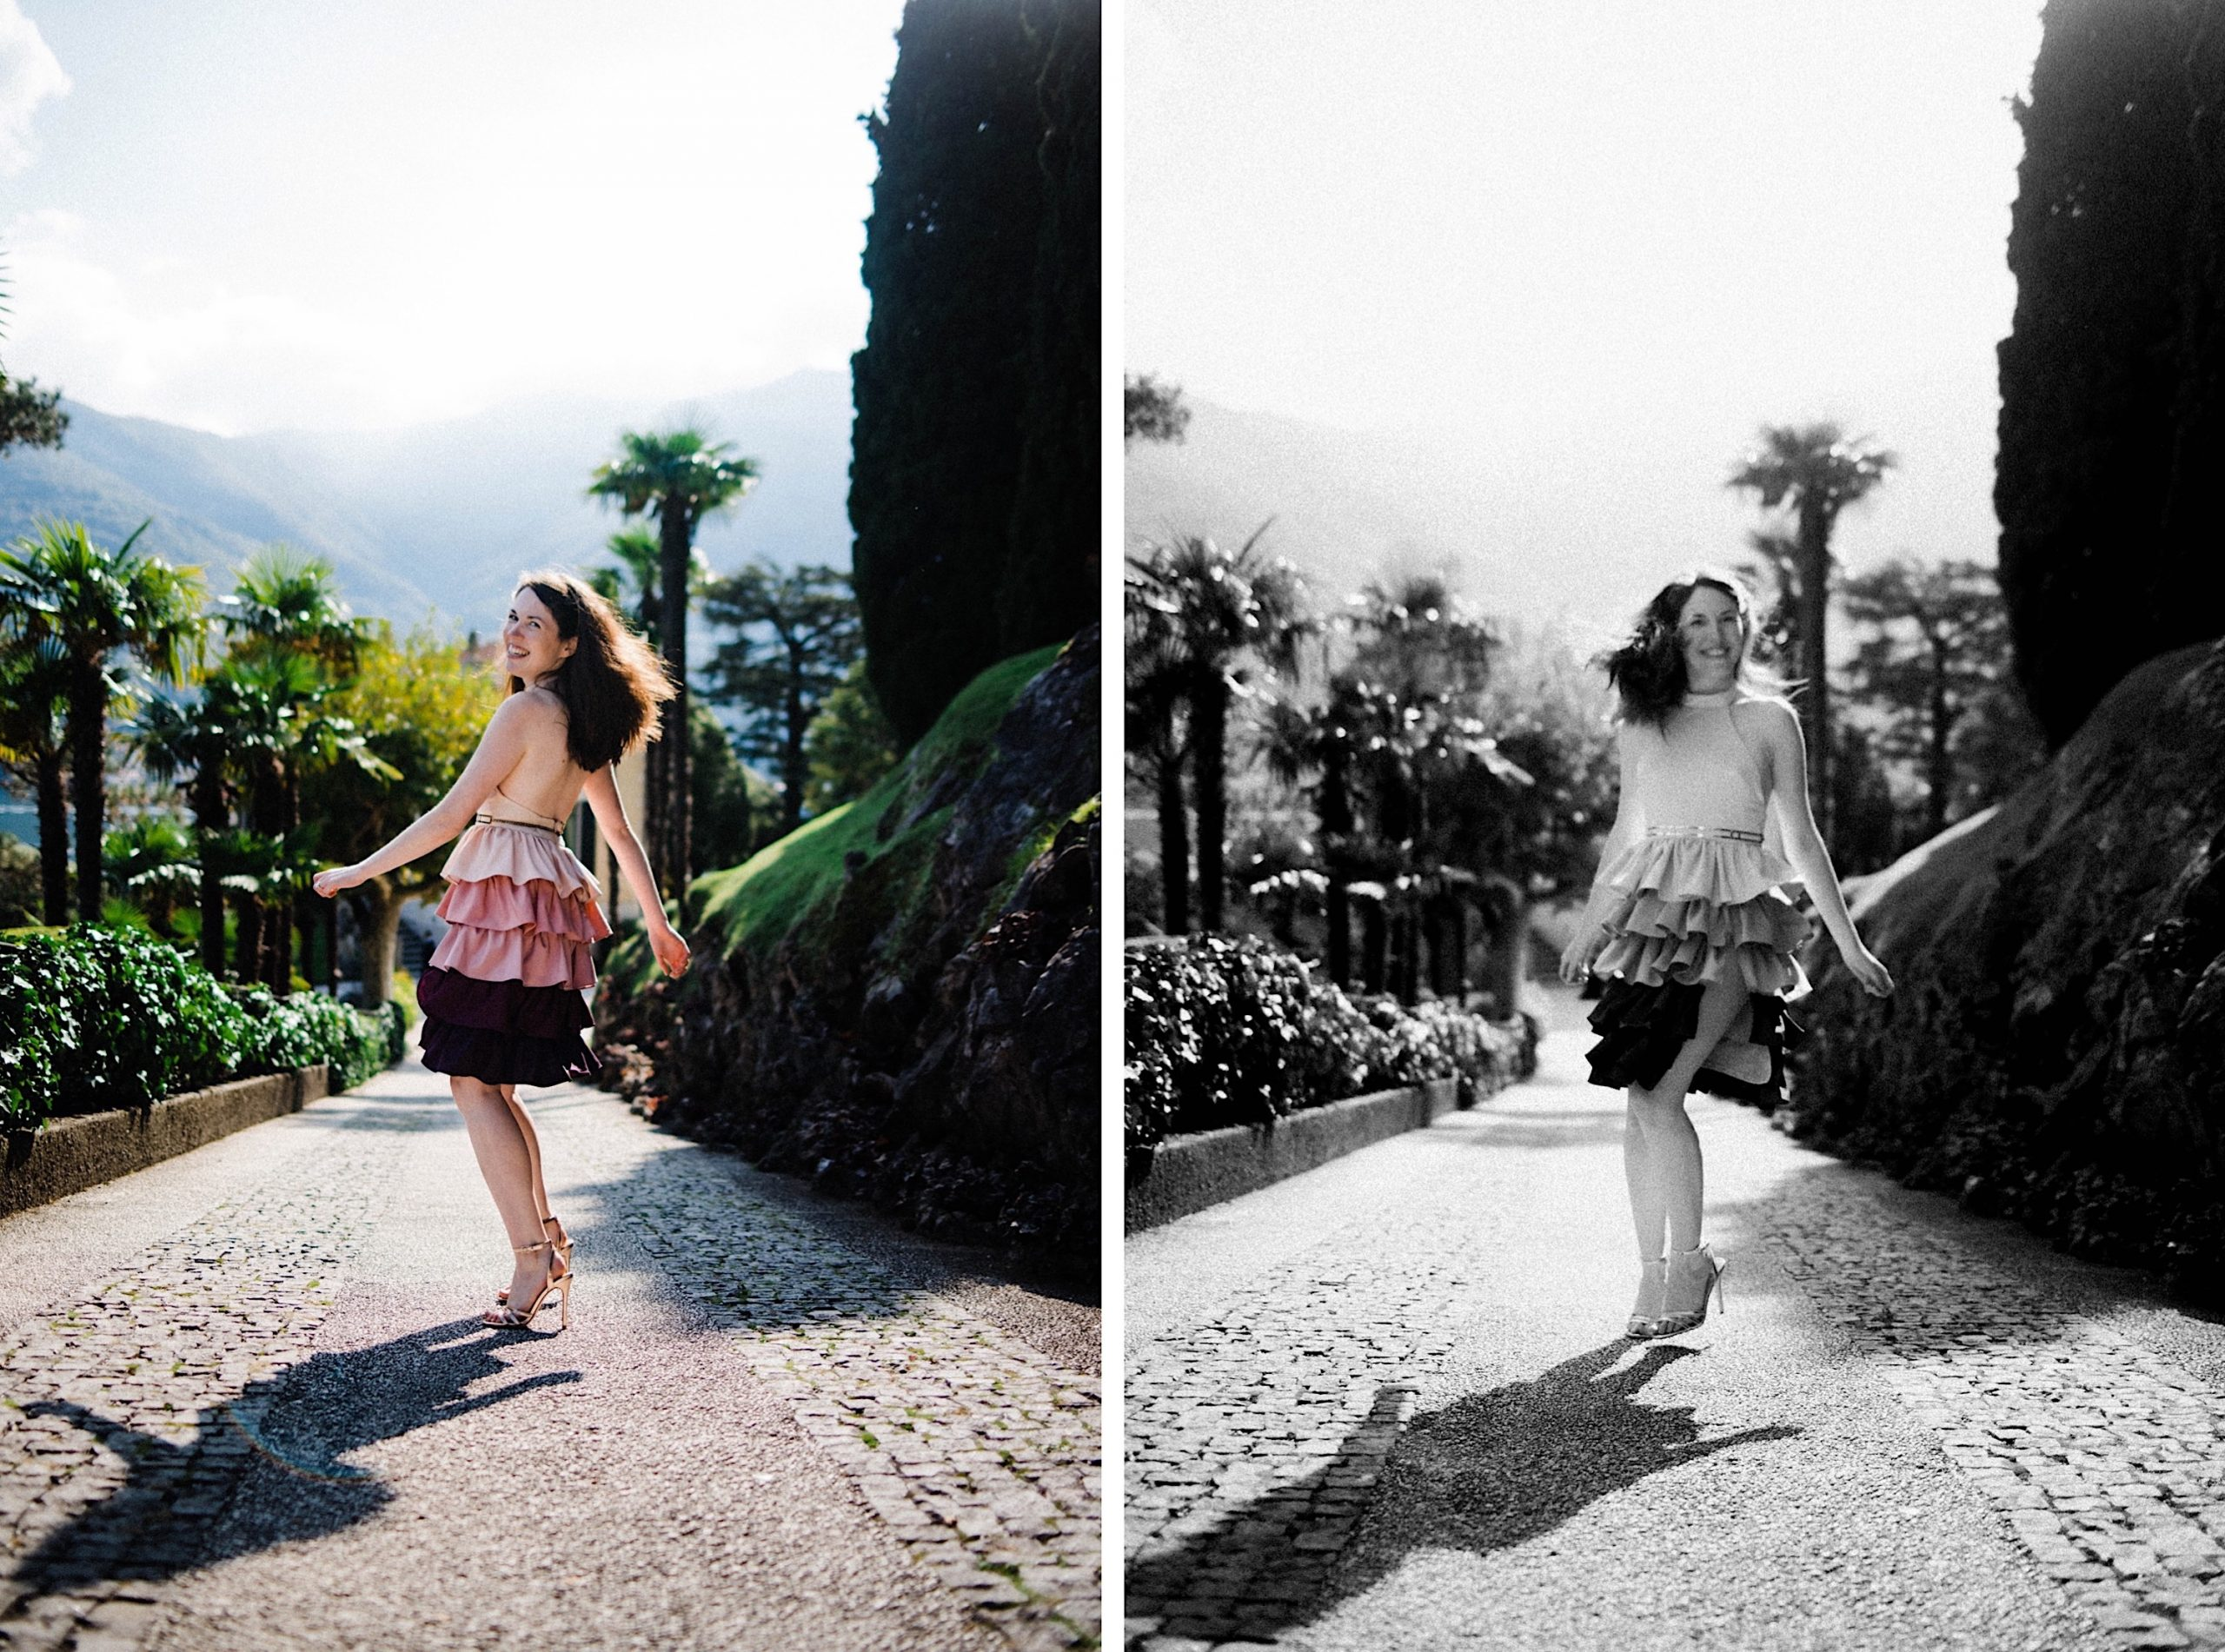 Two side-by-side photos, one in colour and one in black & white, of a woman twirling on the spot, showing off her custom-made, Star Wars inspired dress.